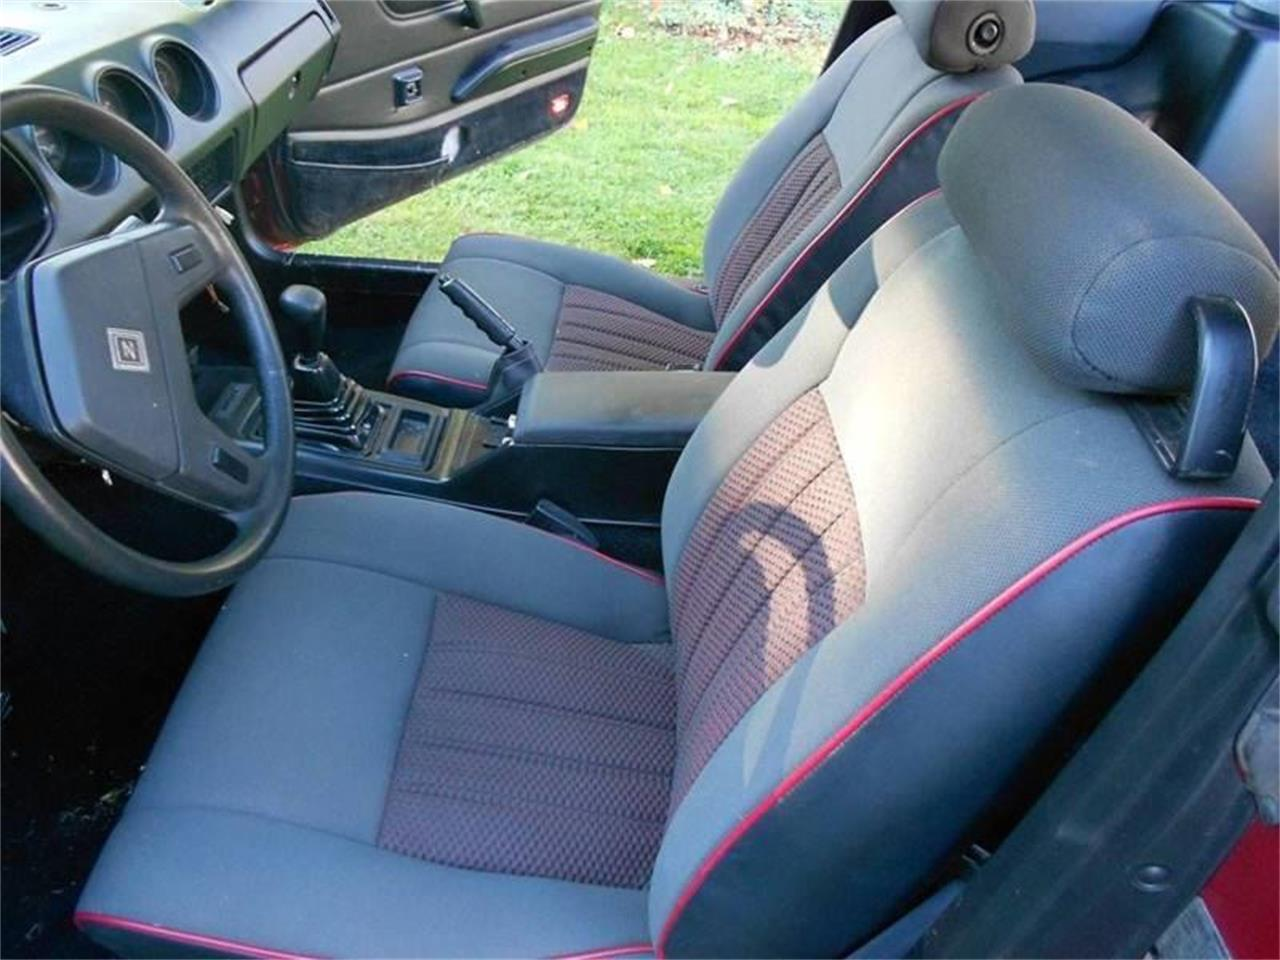 1983 Datsun 280ZX for sale in Long Island, NY – photo 3